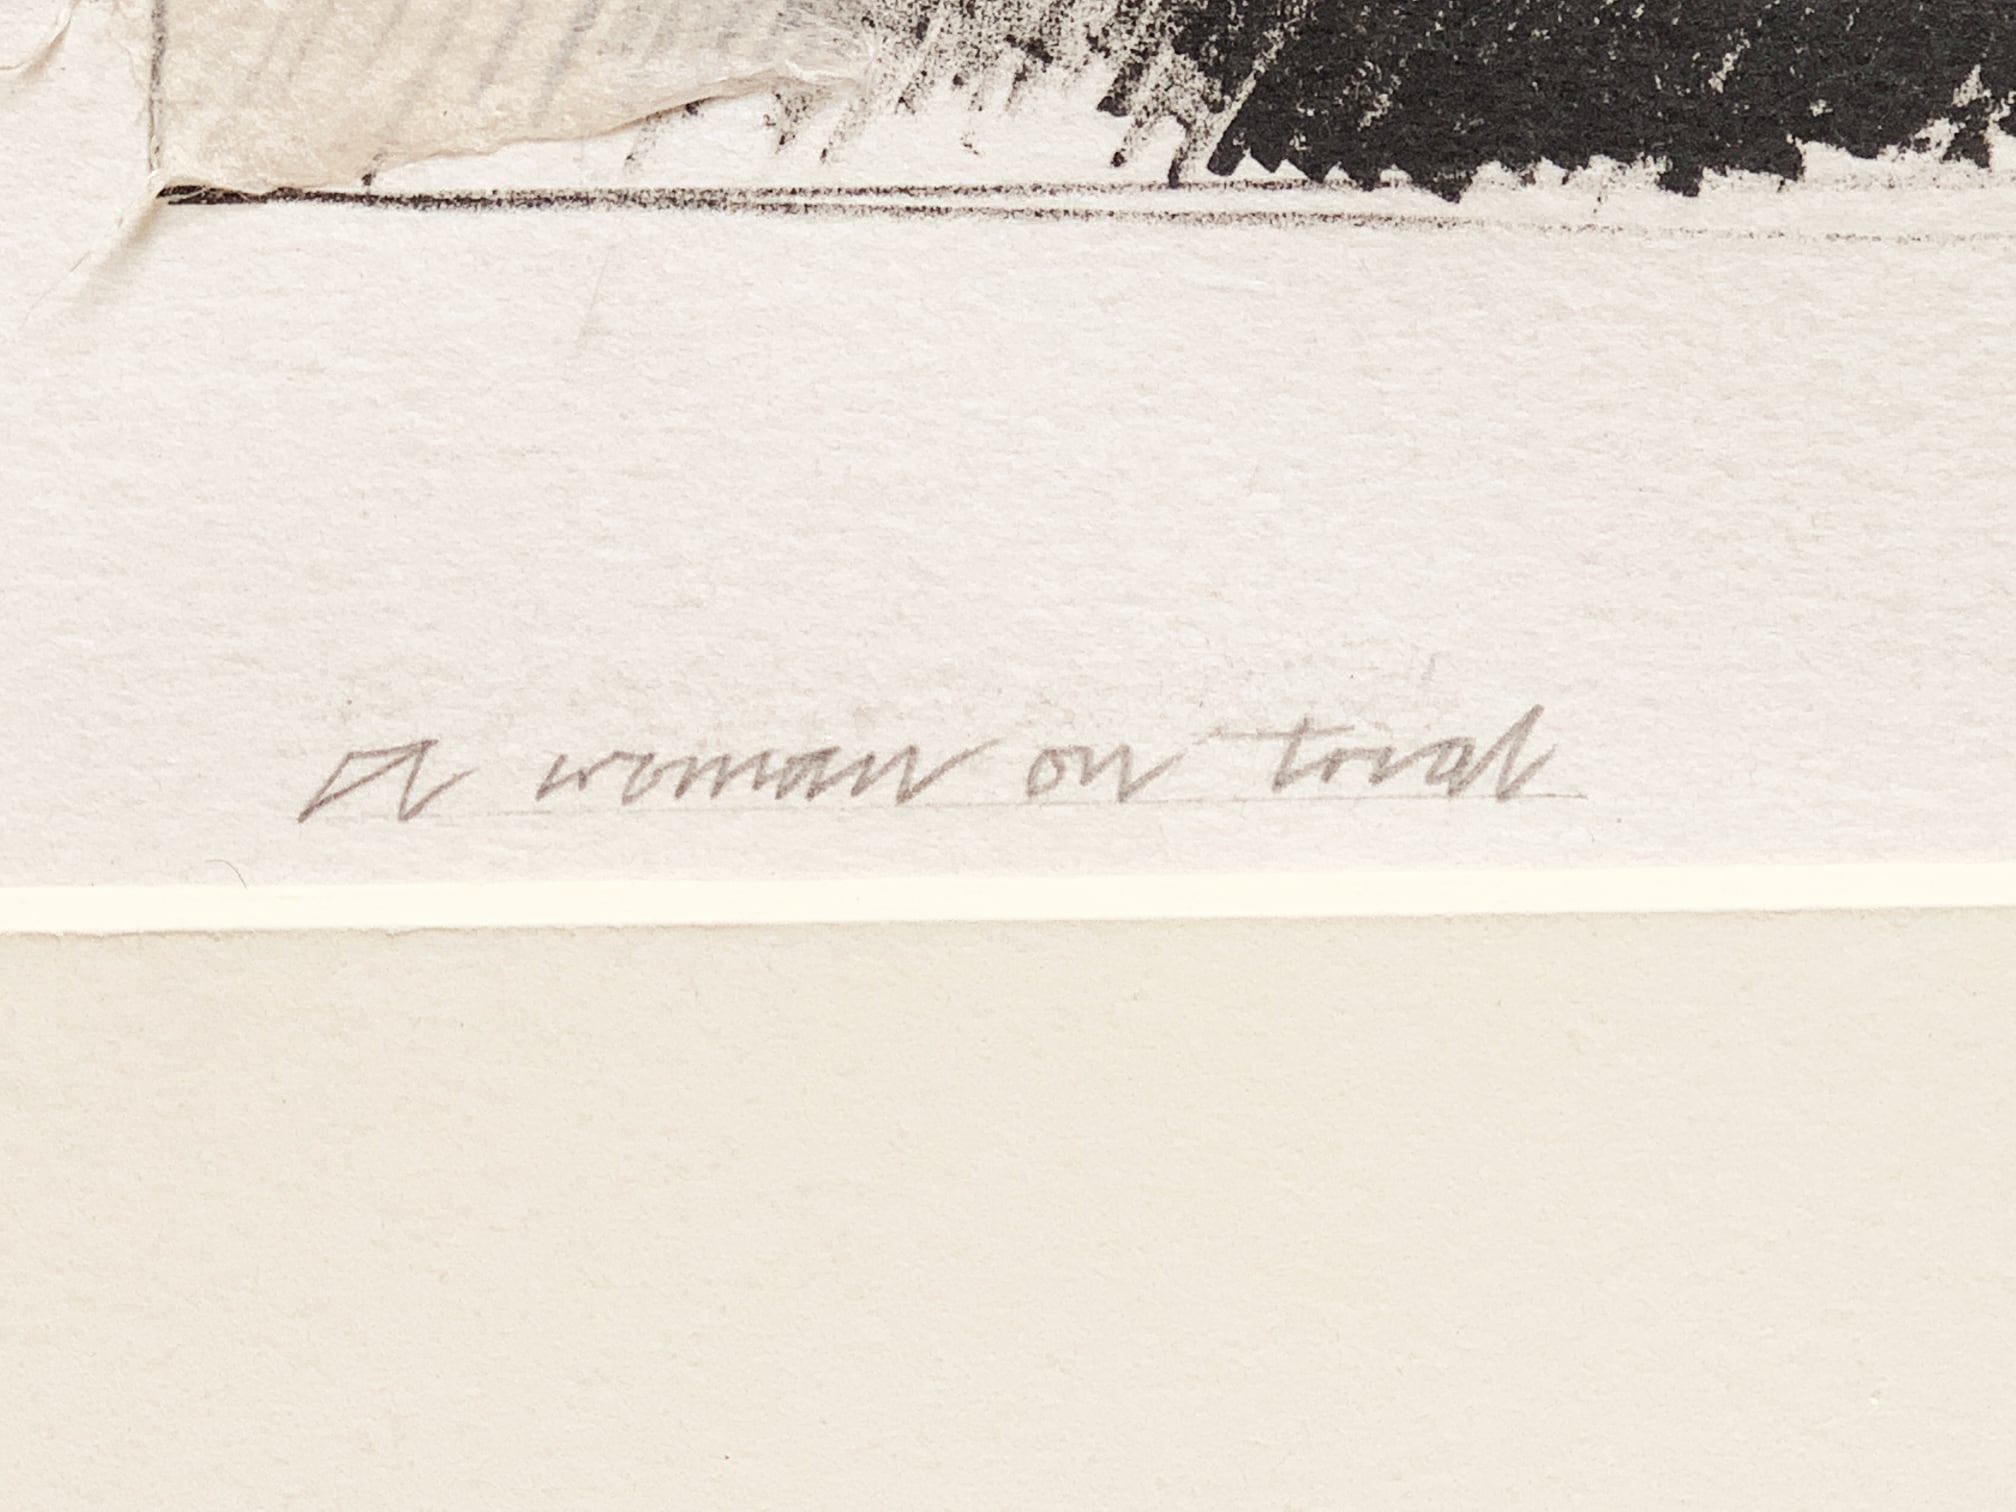 Allen Jones - Woman on Trial